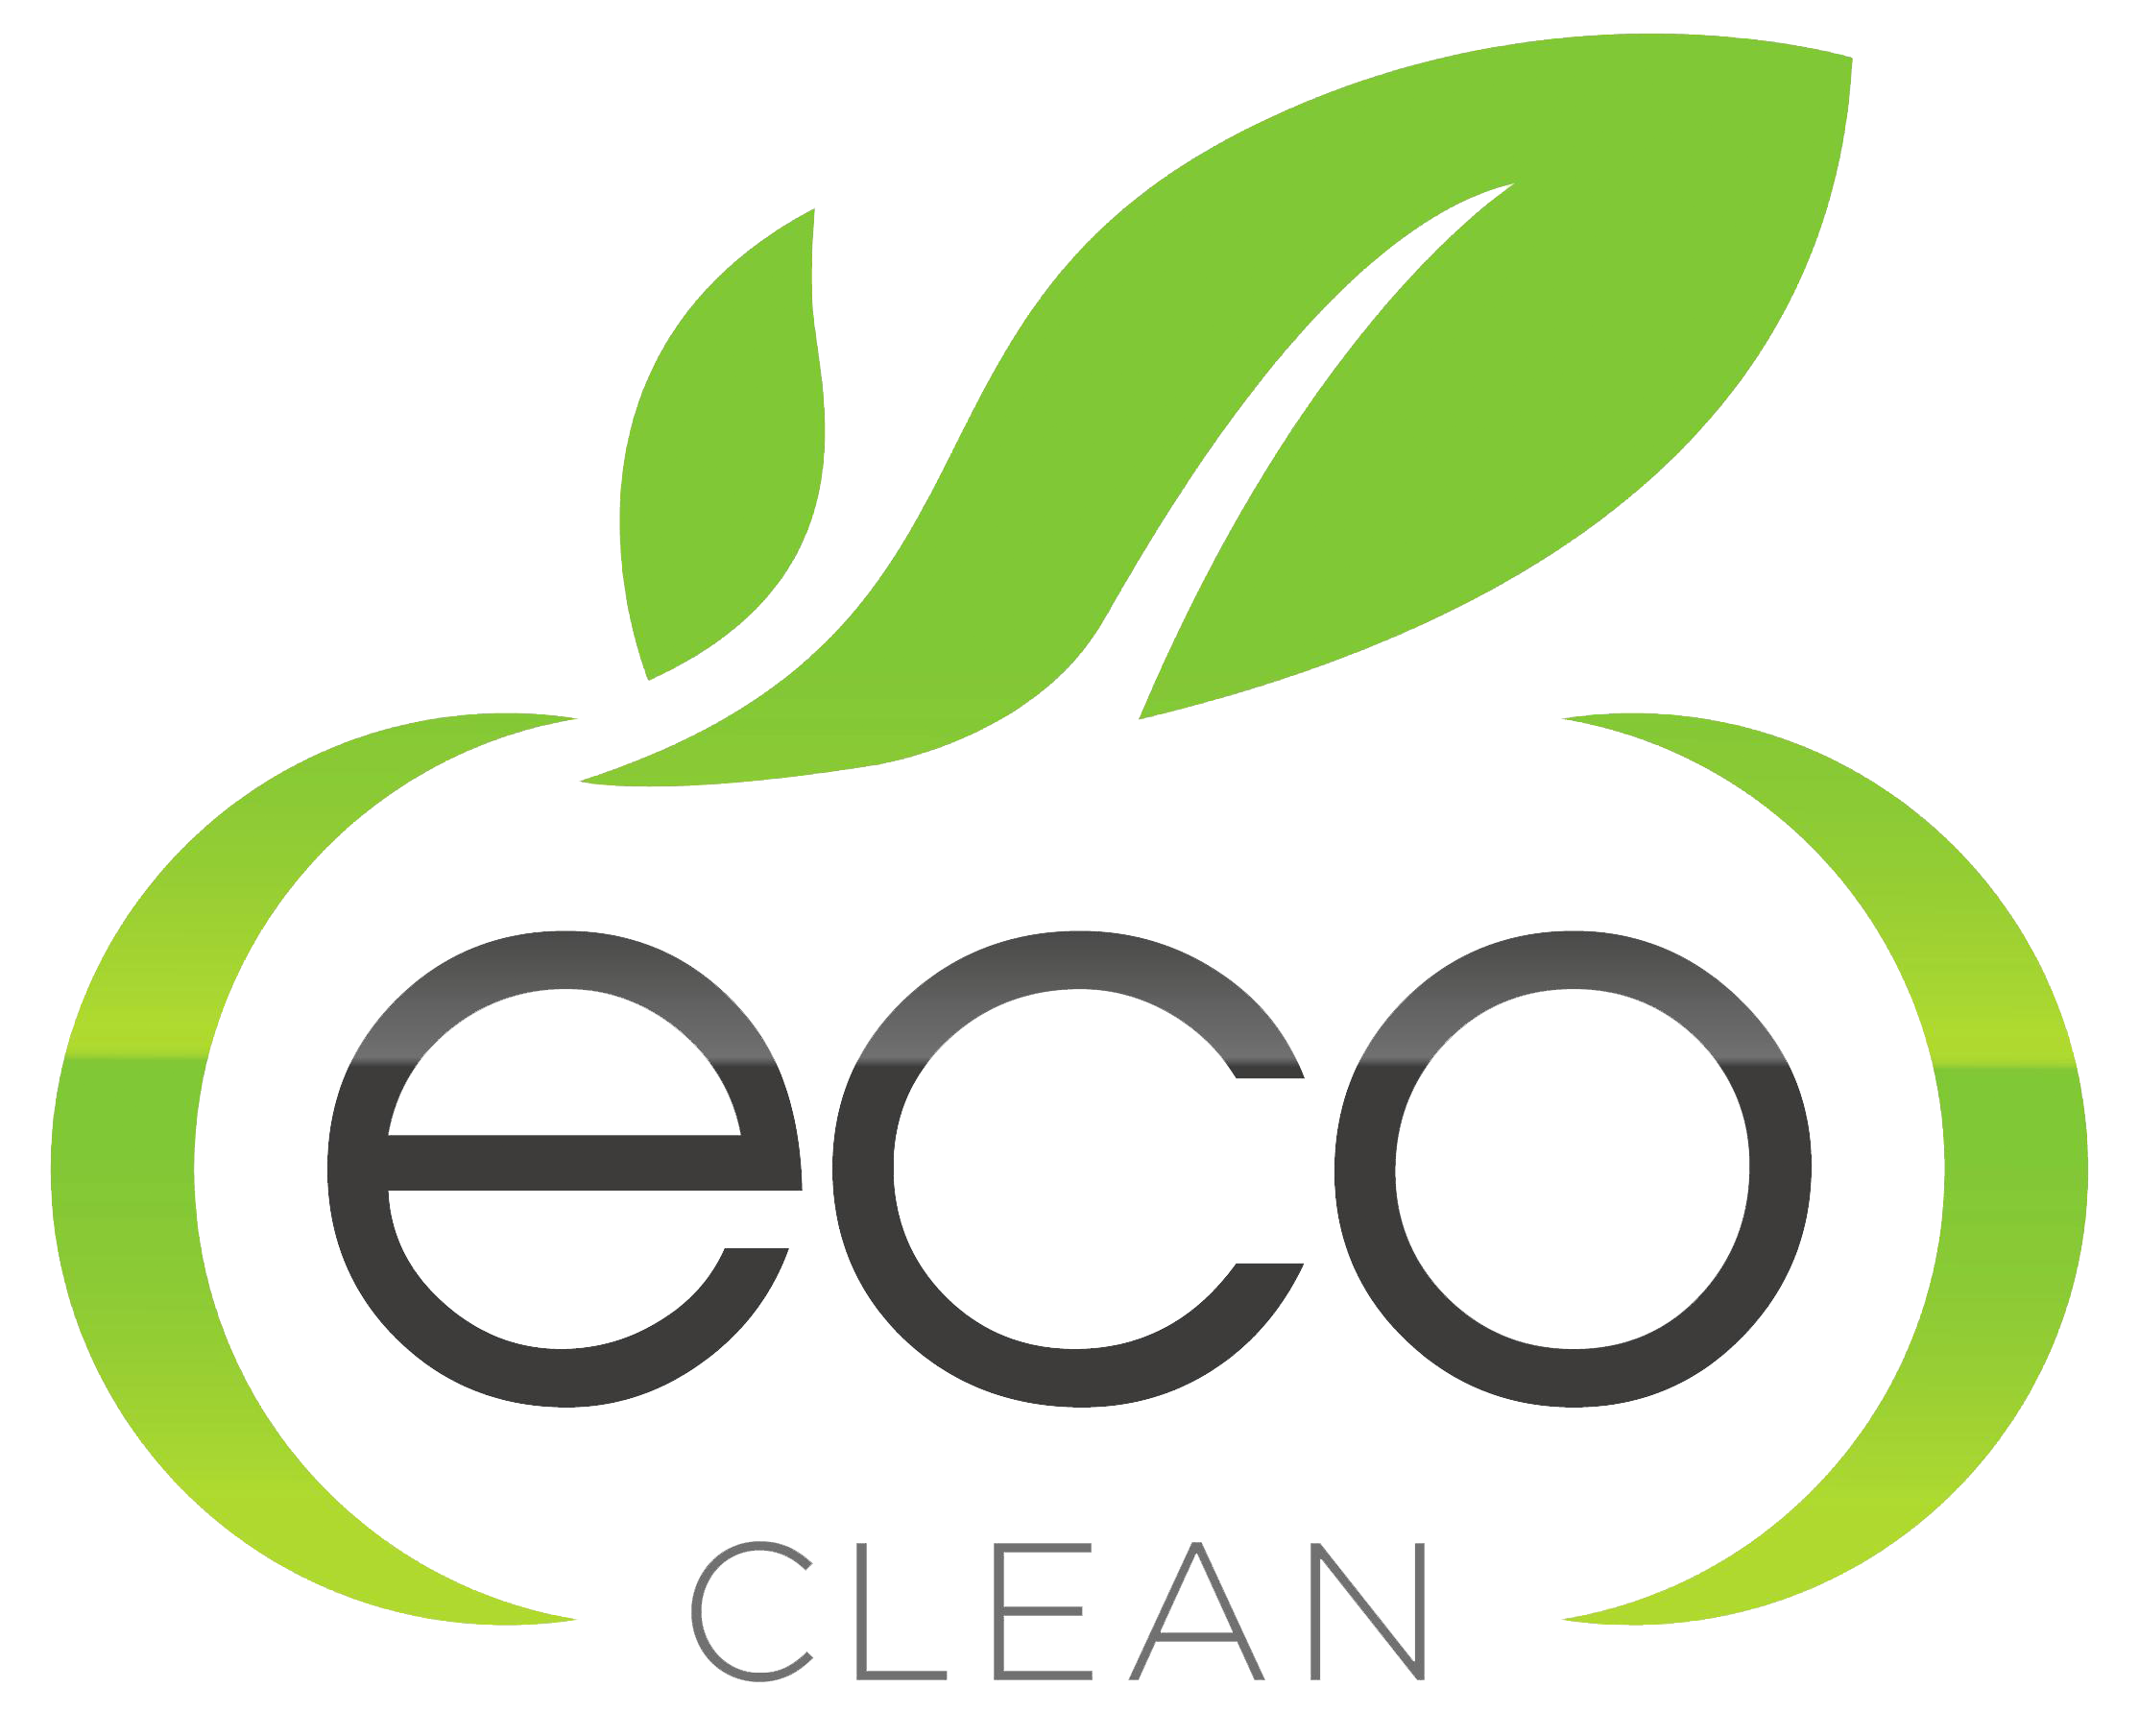 Eco Clean - Eco PNG